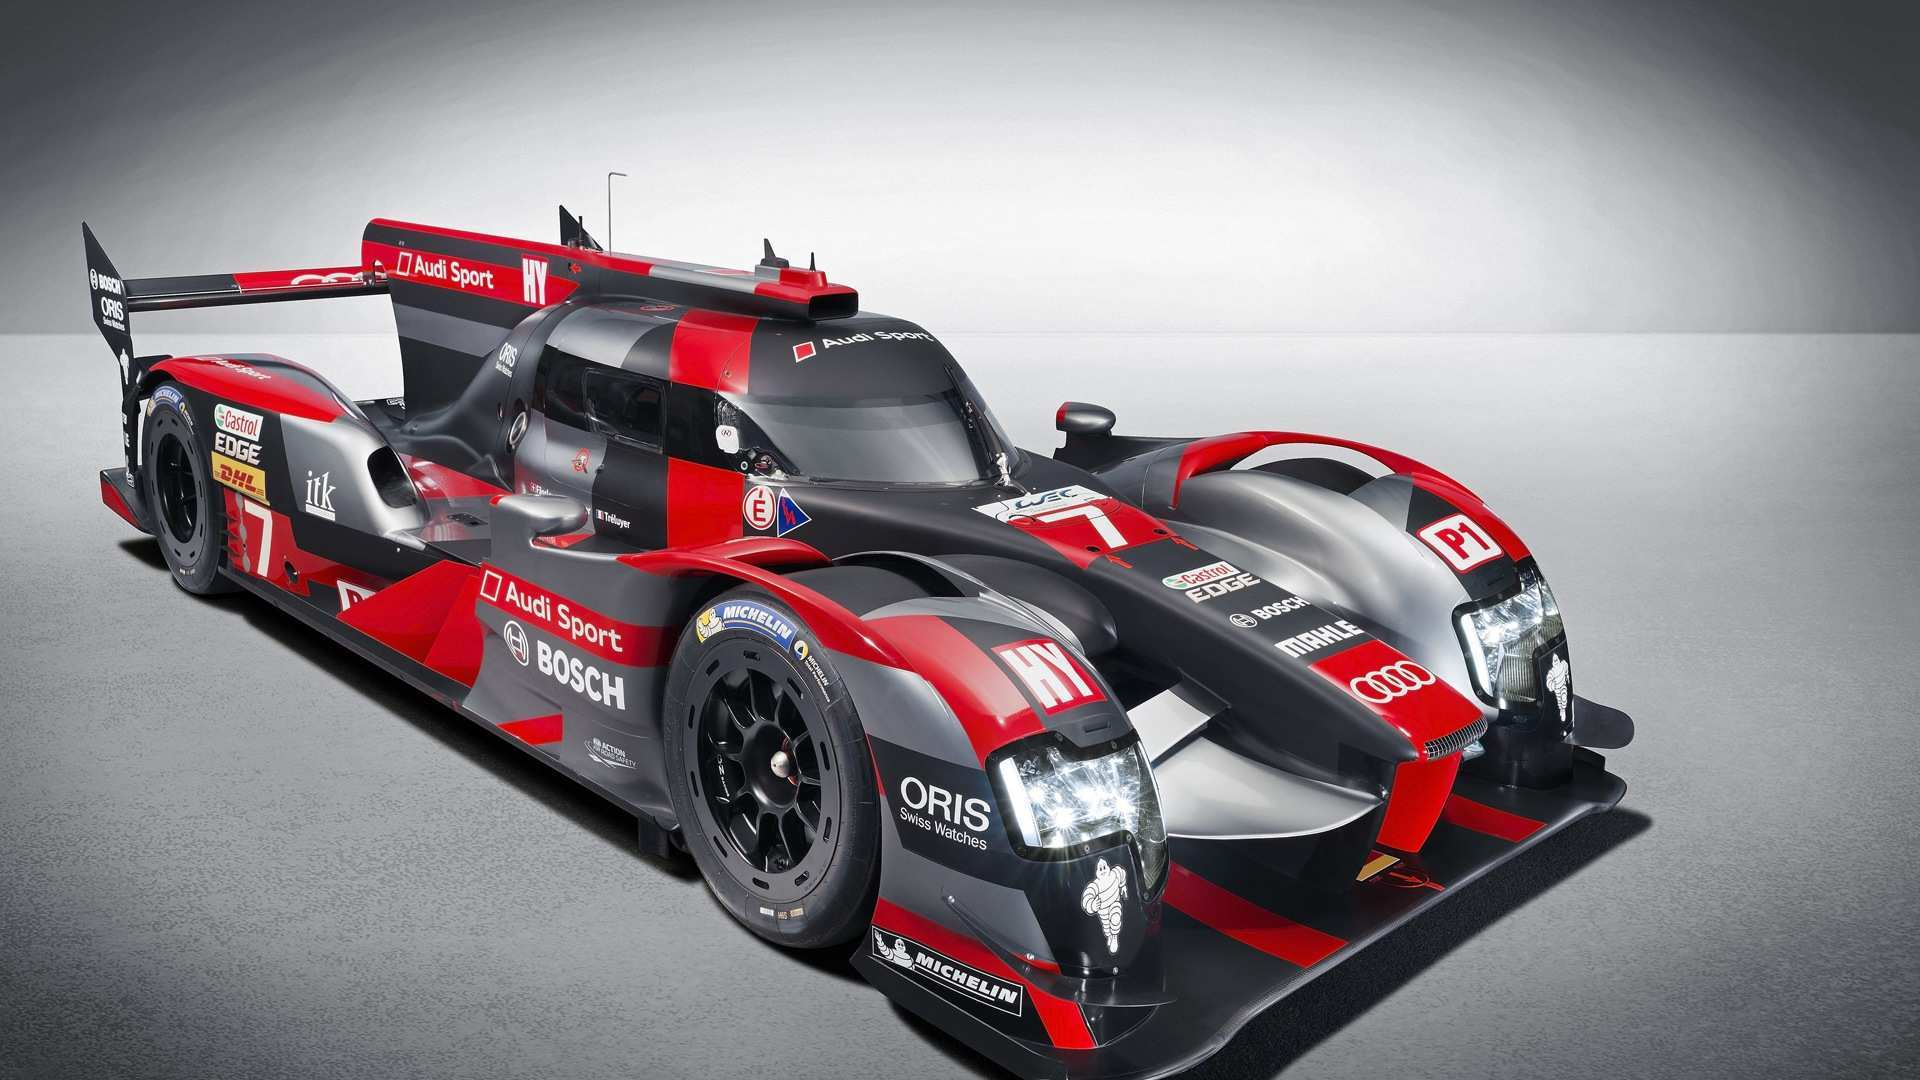 85 Gallery of Audi Lmp1 2020 History for Audi Lmp1 2020